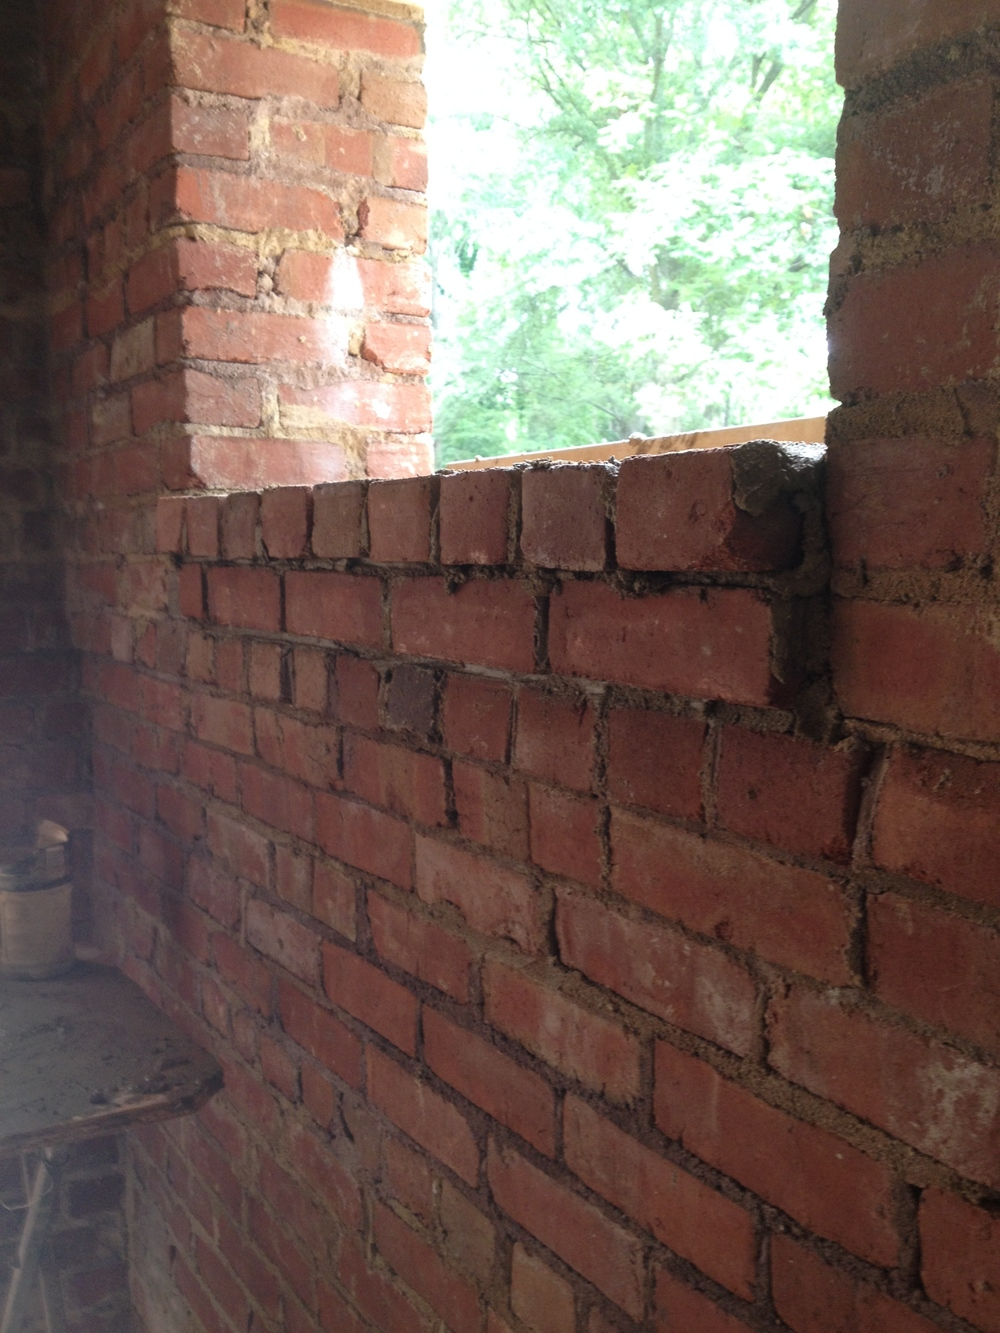 structural masonry, corbeled window ledge detail